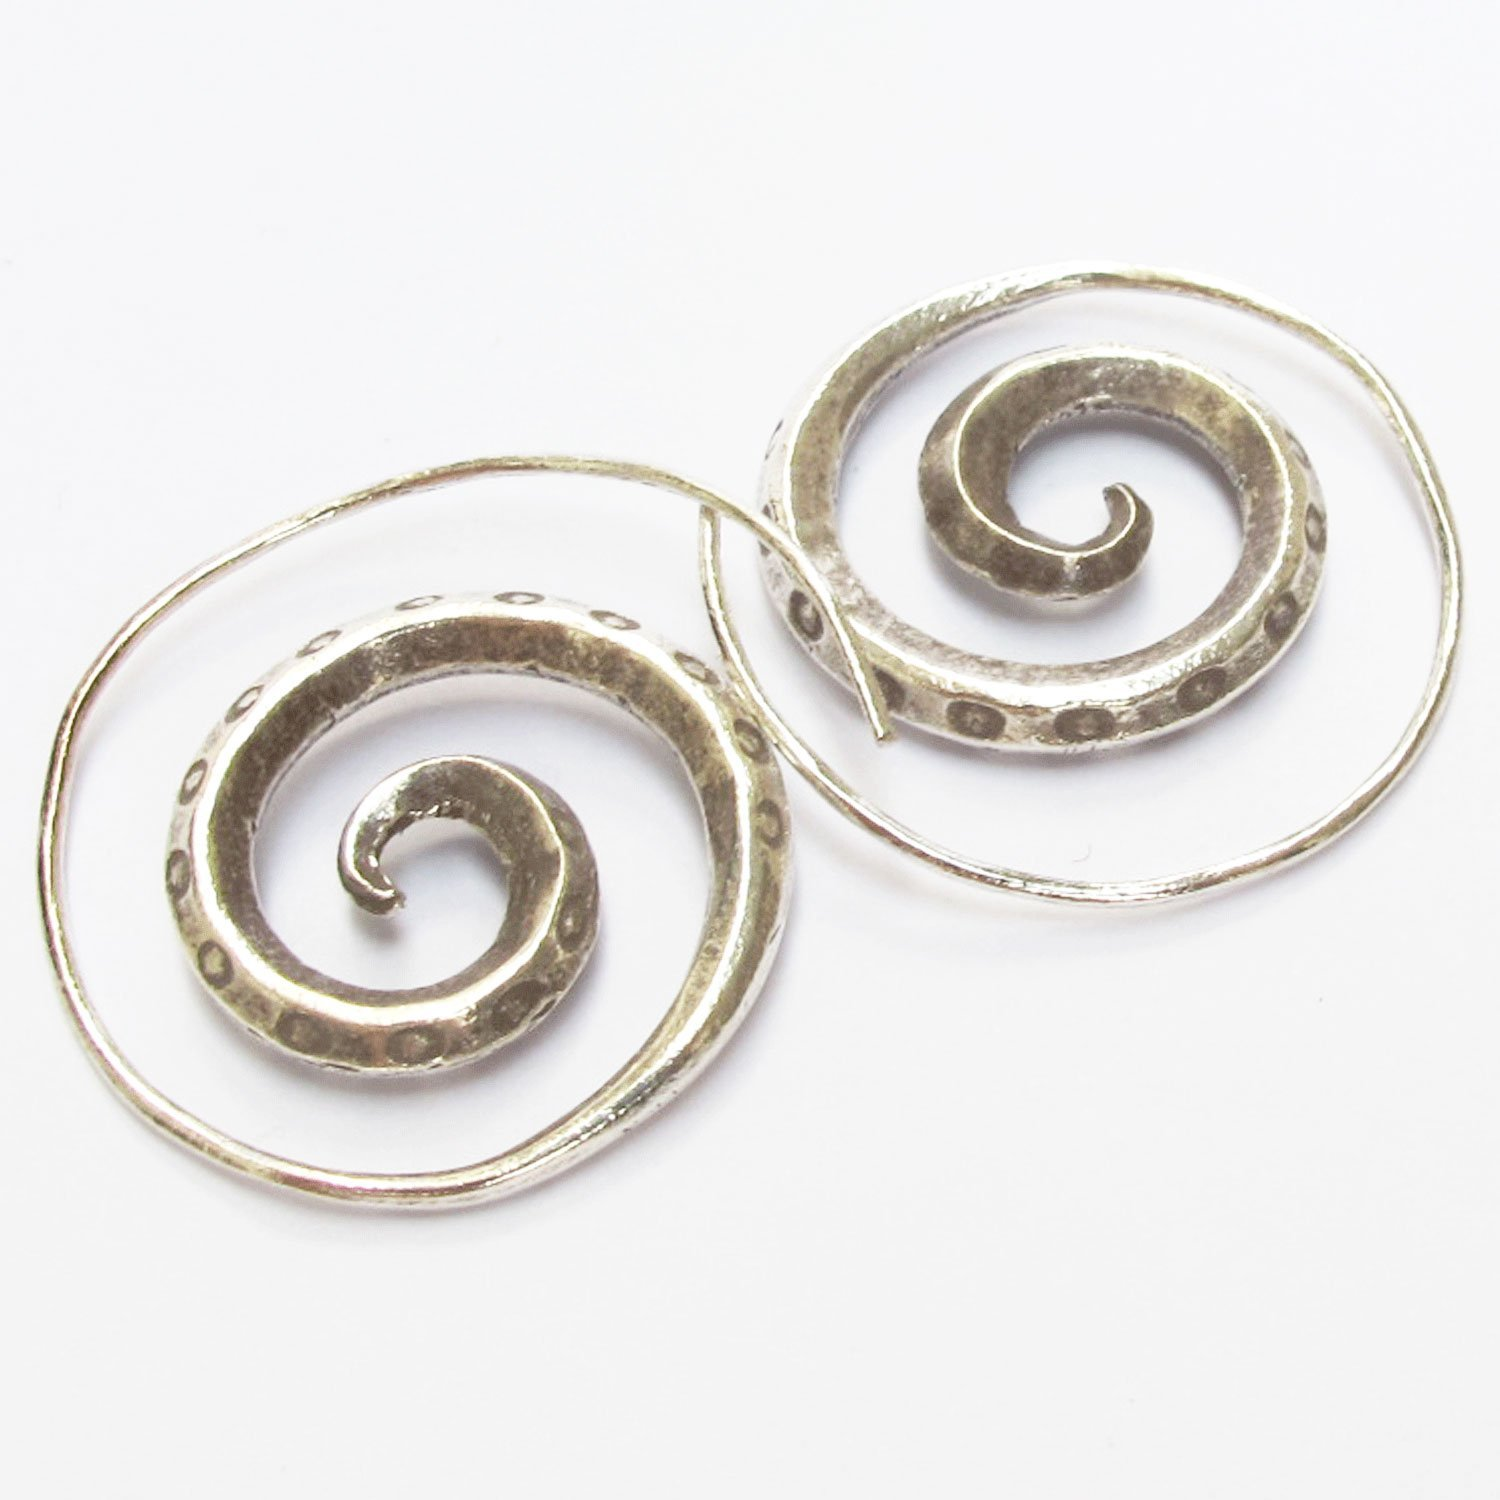 GENUINE NORTH OF THAILAND KAREAN HILL TRIBE 98/% SPIRAL SILVER HANDCRAFT HANDMADE { KAREAN EARRING BOX/_1 } Free Shipping!!